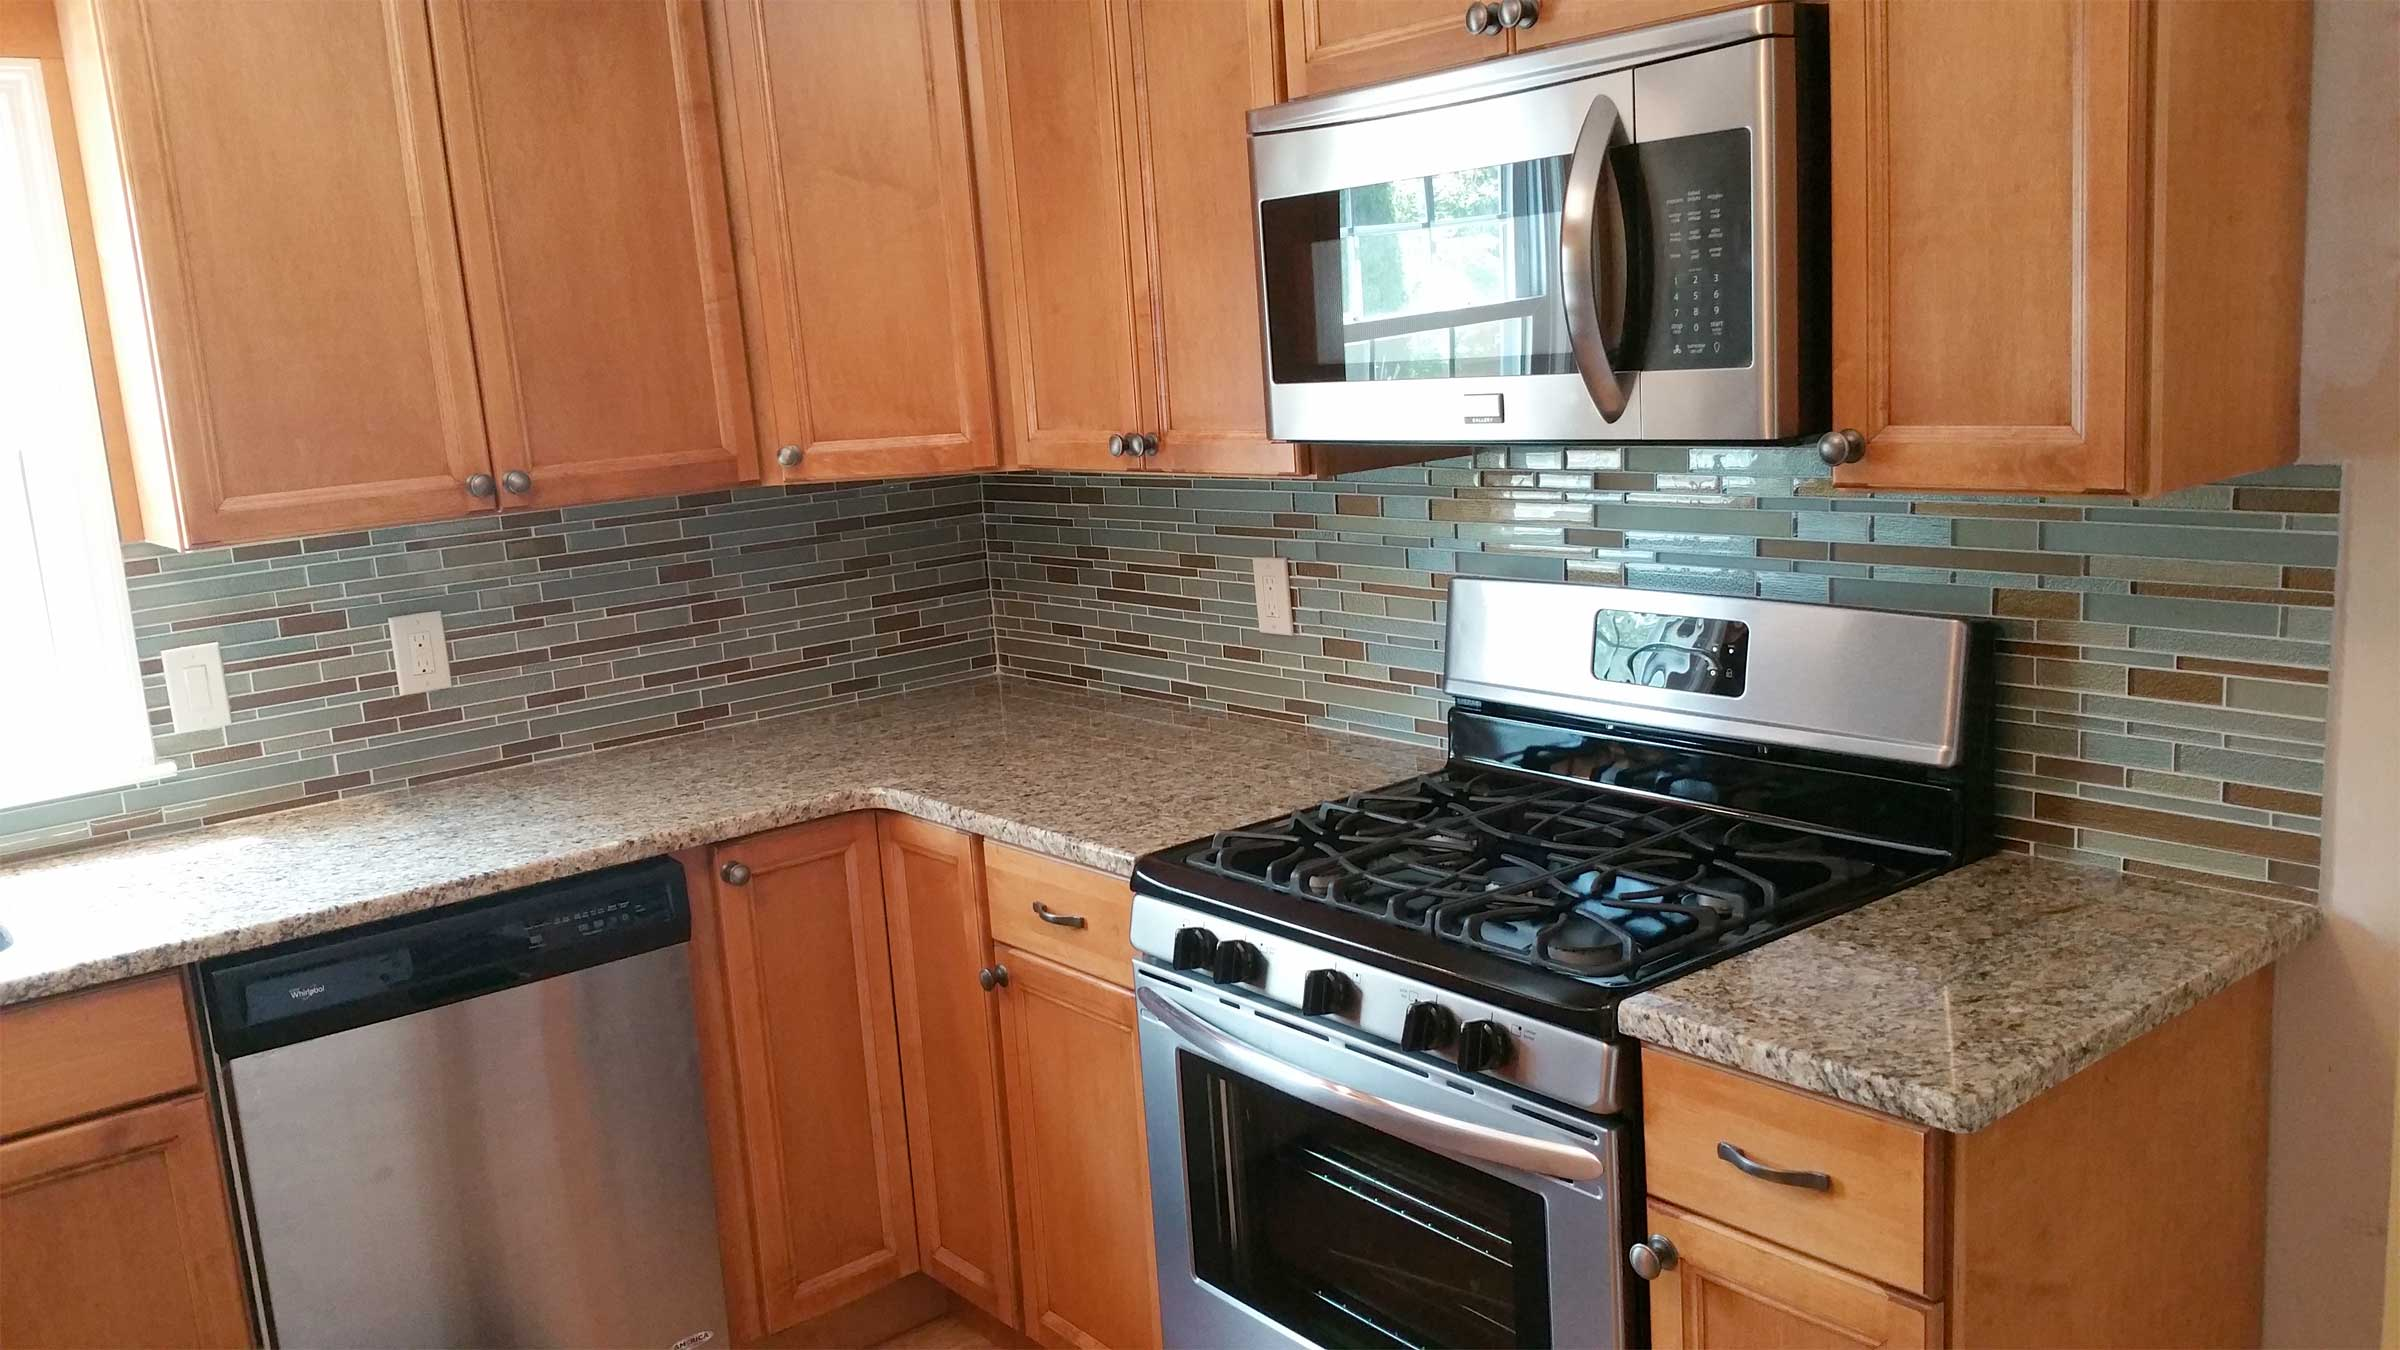 The Basic Kitchen Co. - remodeled kitchen - May 2015